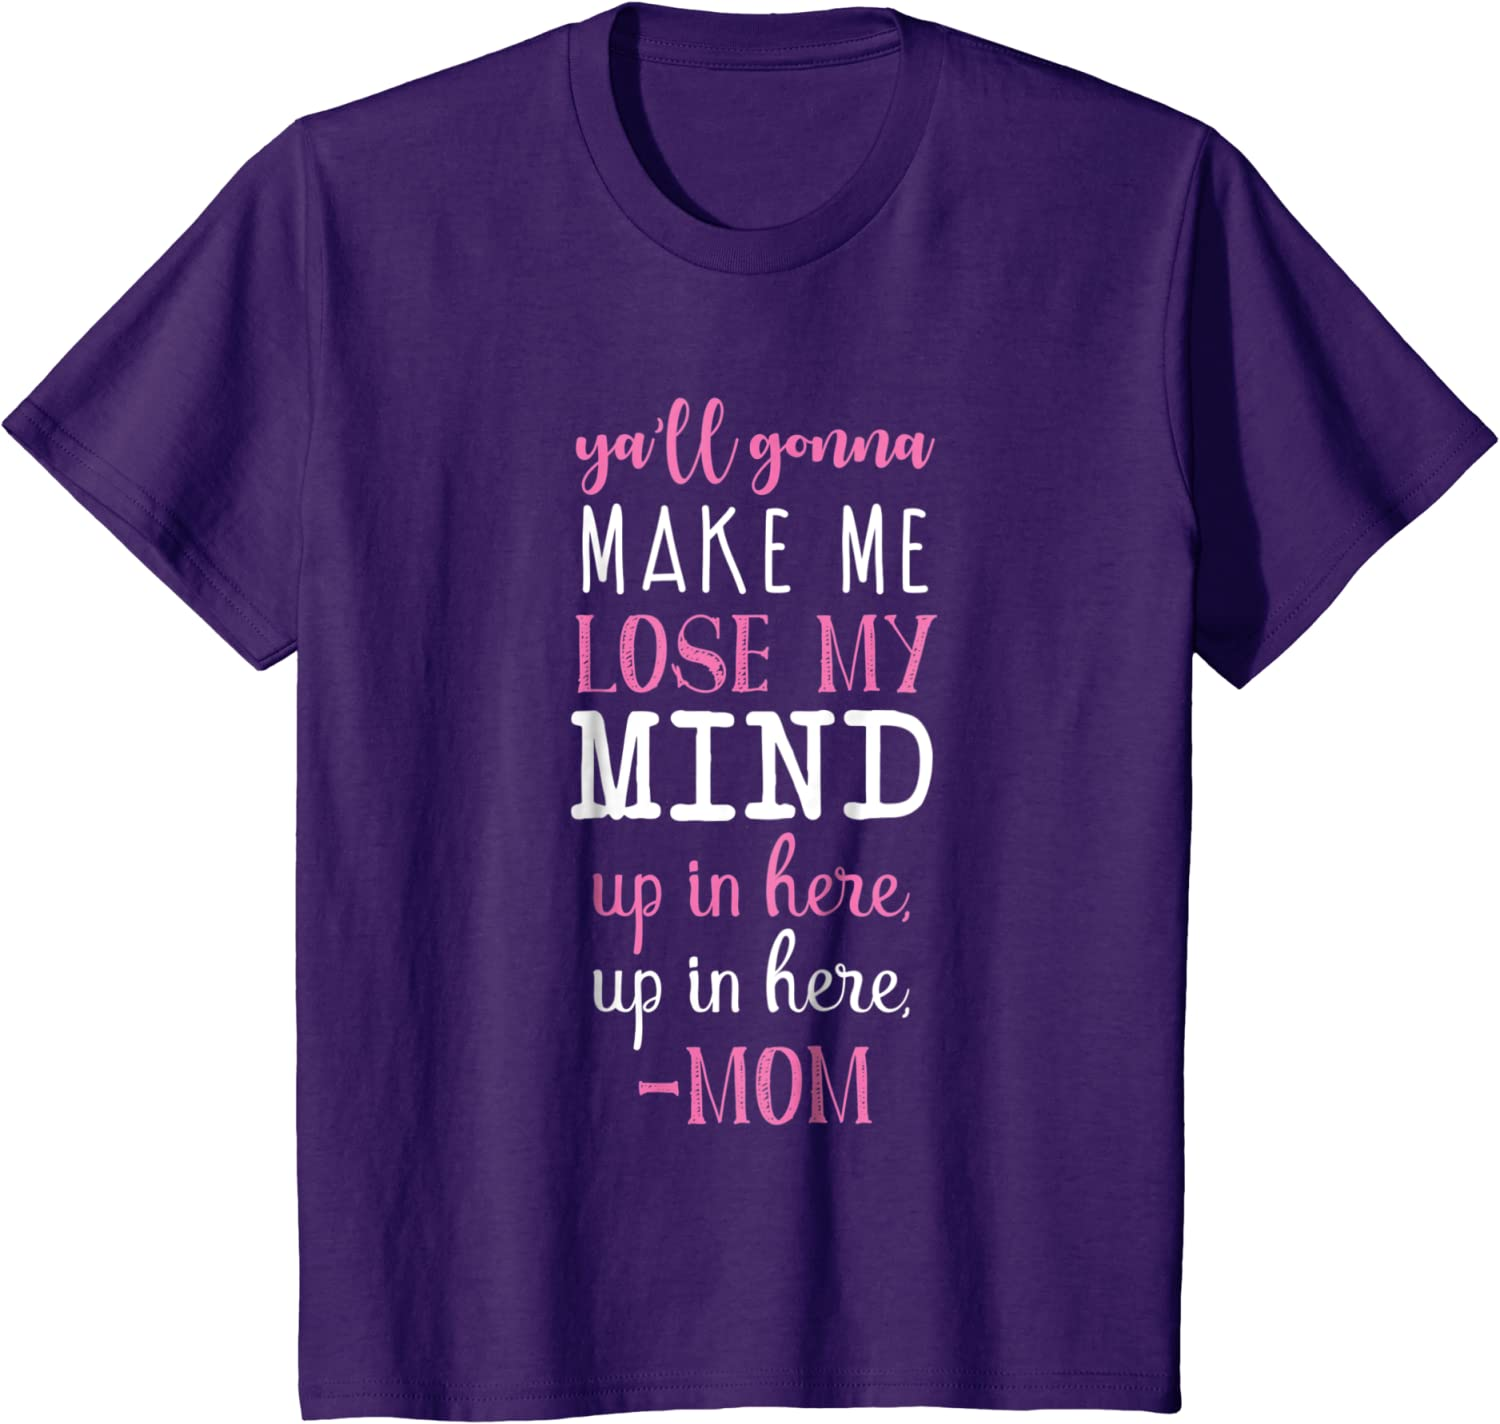 Women/'s Graphic Tee Mom Shirt Y/'all Gonna Make Me Lose My Mind Funny Shirt